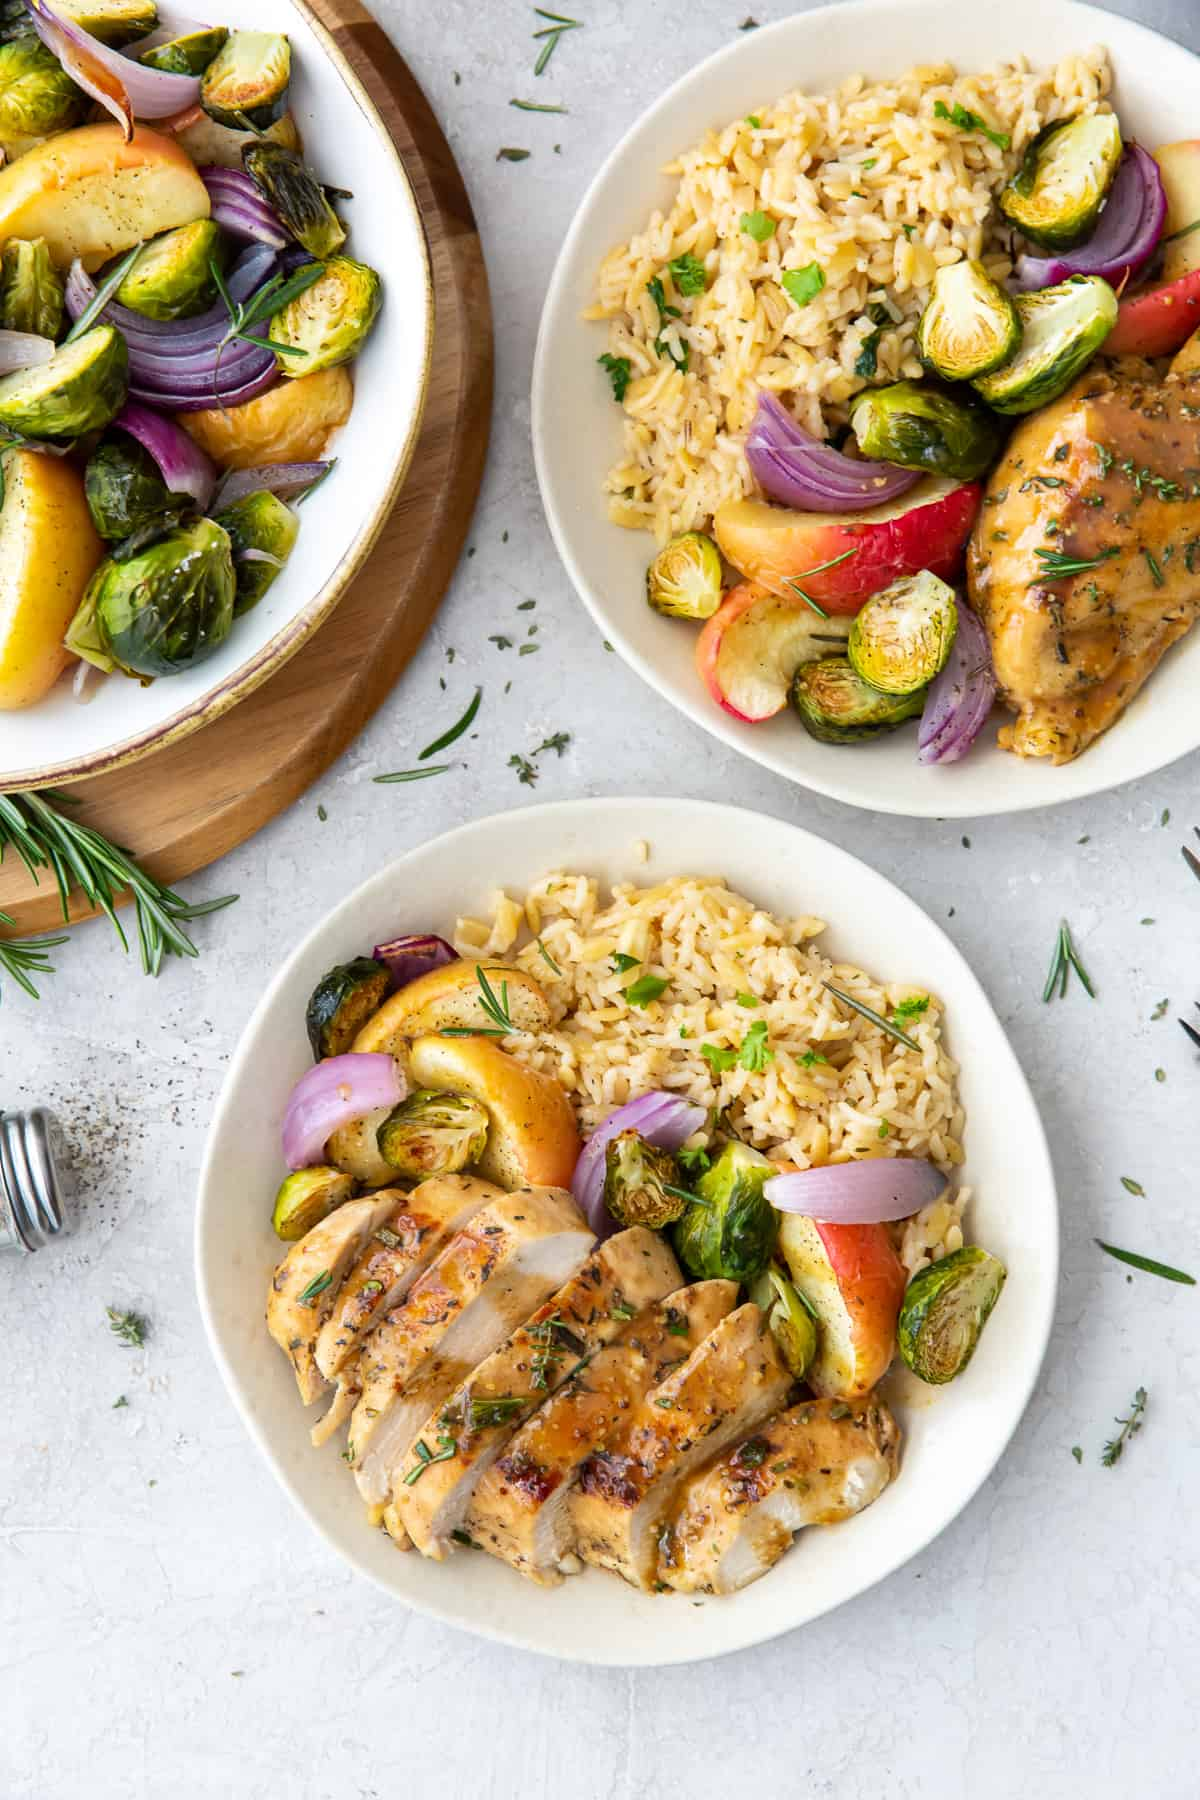 Photo over top of two bowls of apple chicken next to a bowl of roasted vegetables.